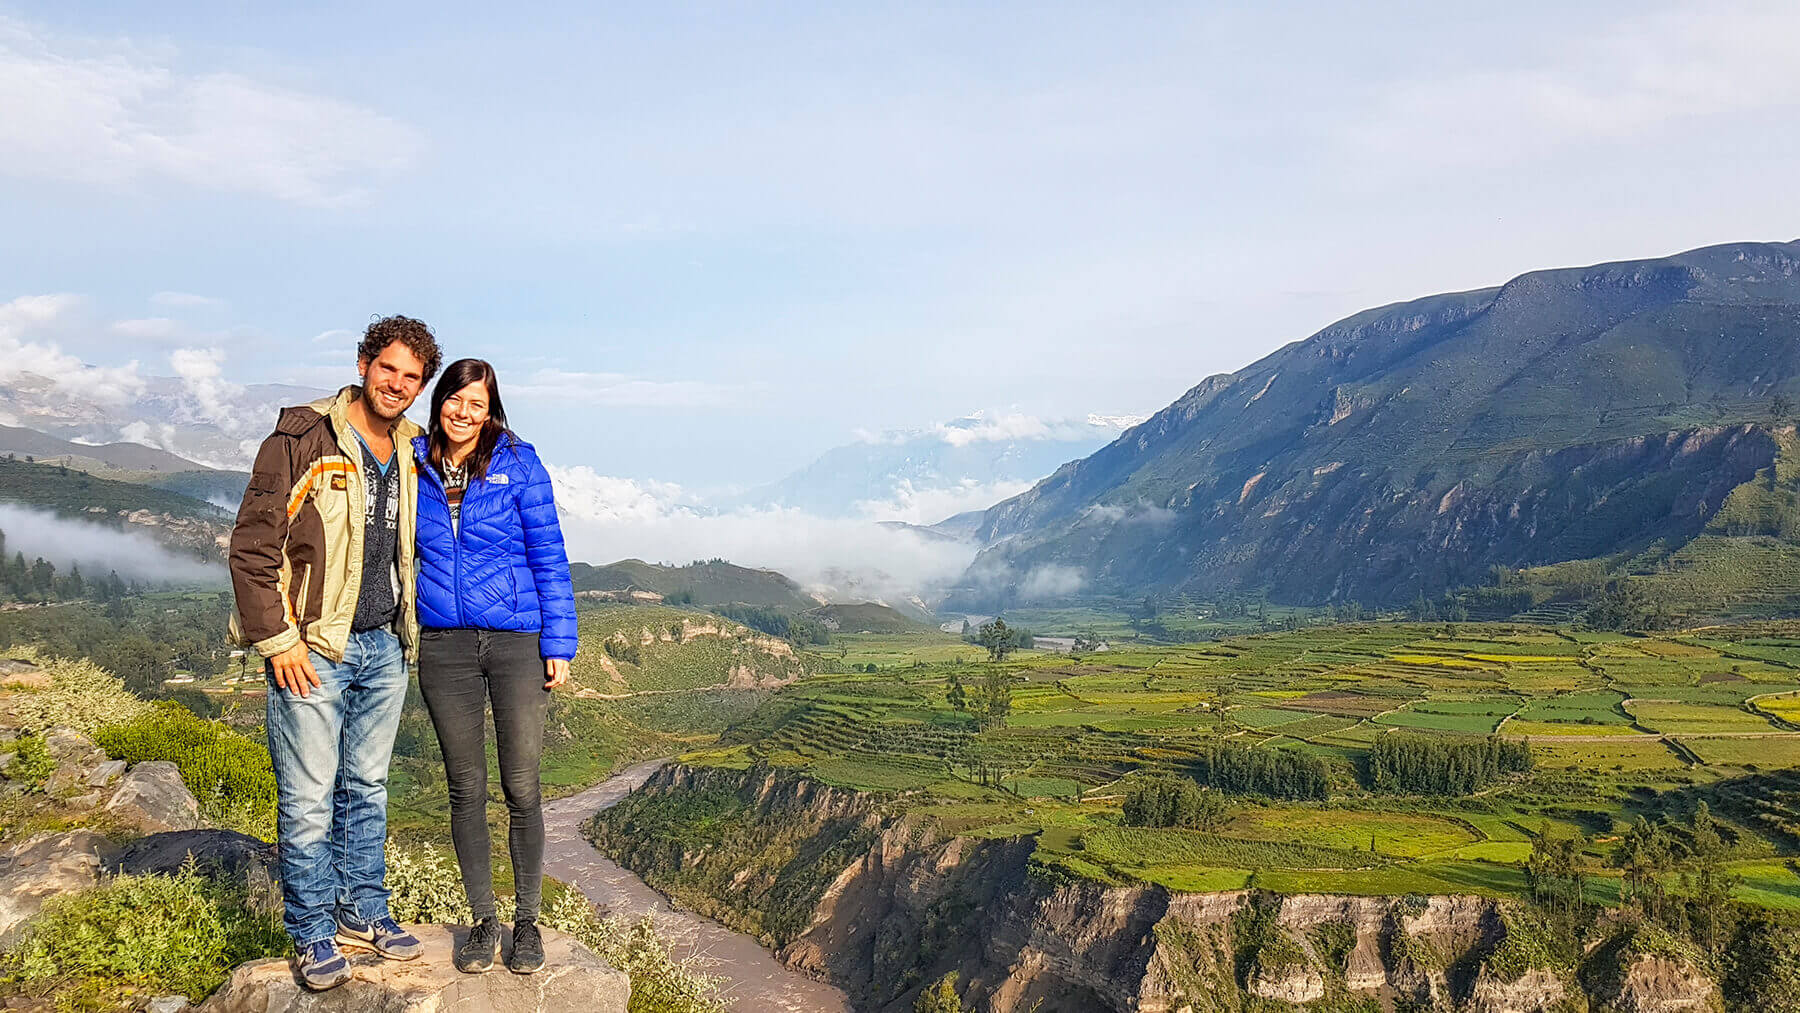 On the road to the Colca Canyon you will come across amazing views